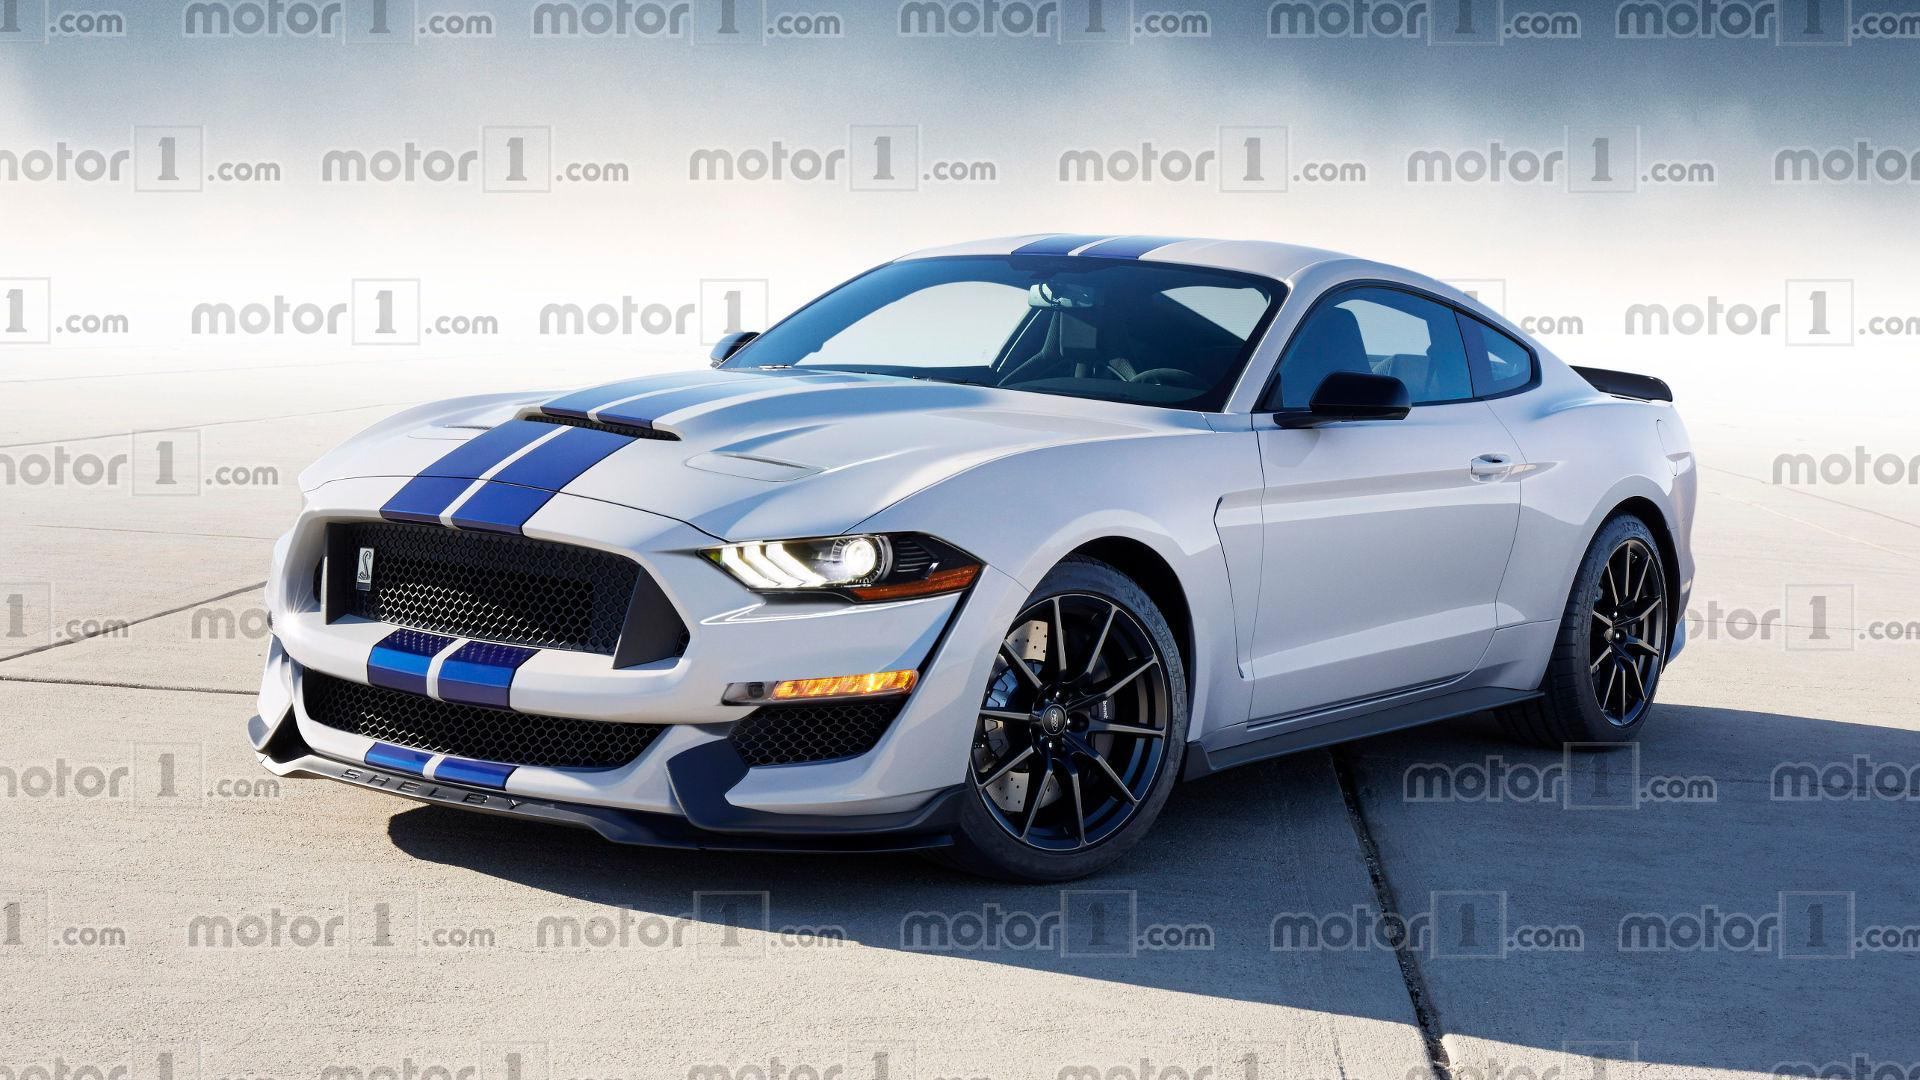 2019 ford mustang shelby gt500 looks aggressive in new rendering. Black Bedroom Furniture Sets. Home Design Ideas